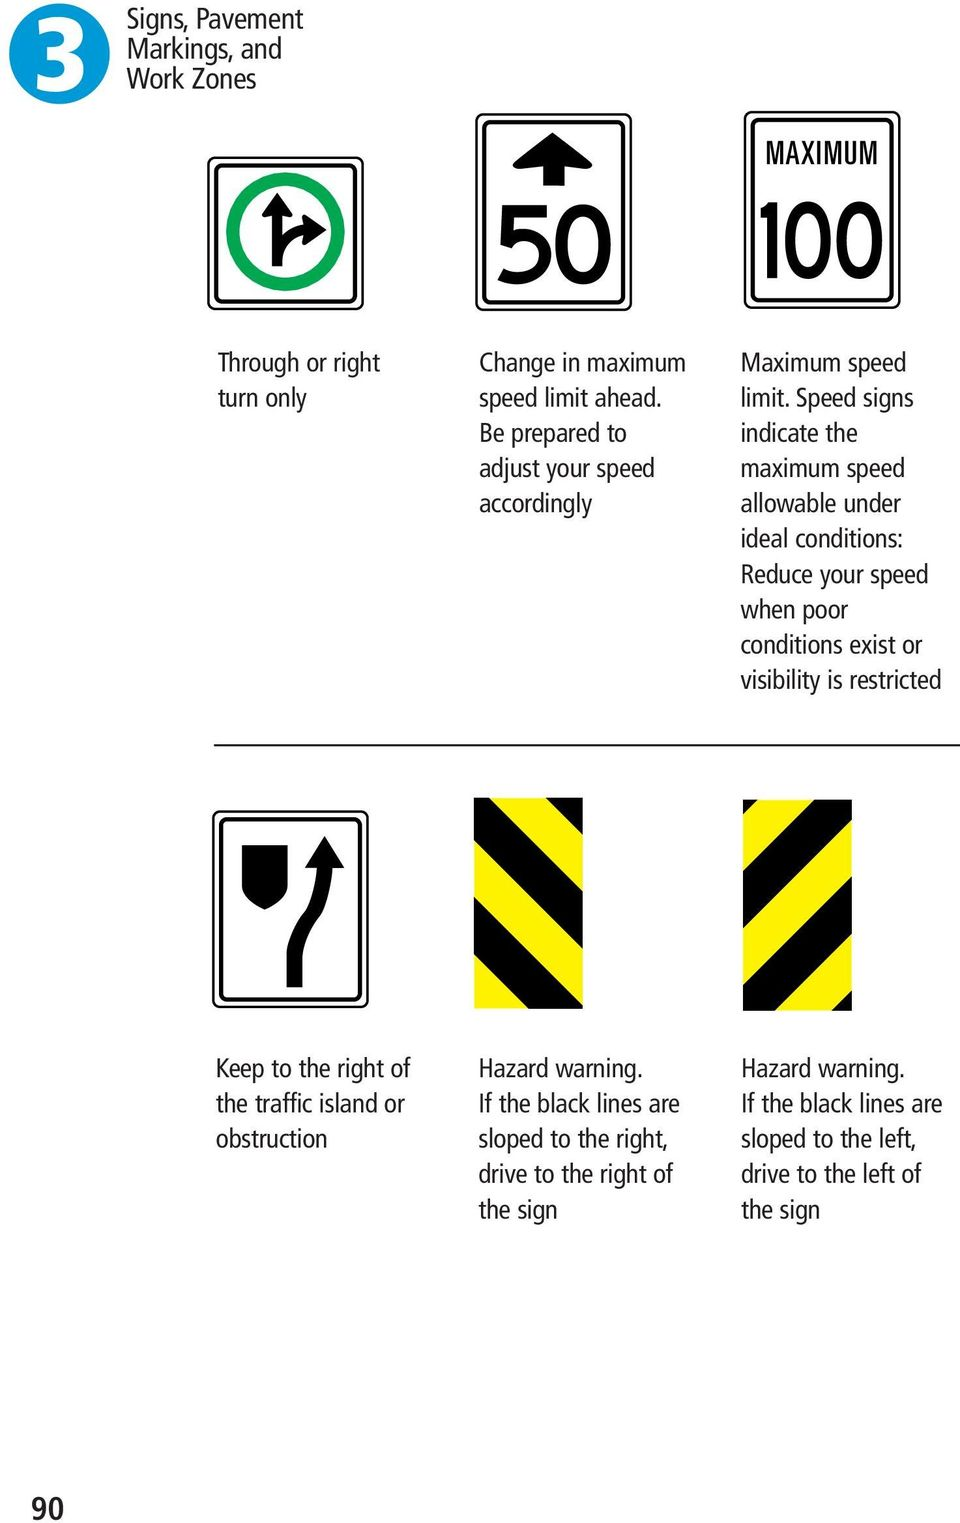 Speed signs indicate the maximum speed allowable under ideal conditions: Reduce your speed when poor conditions exist or visibility is